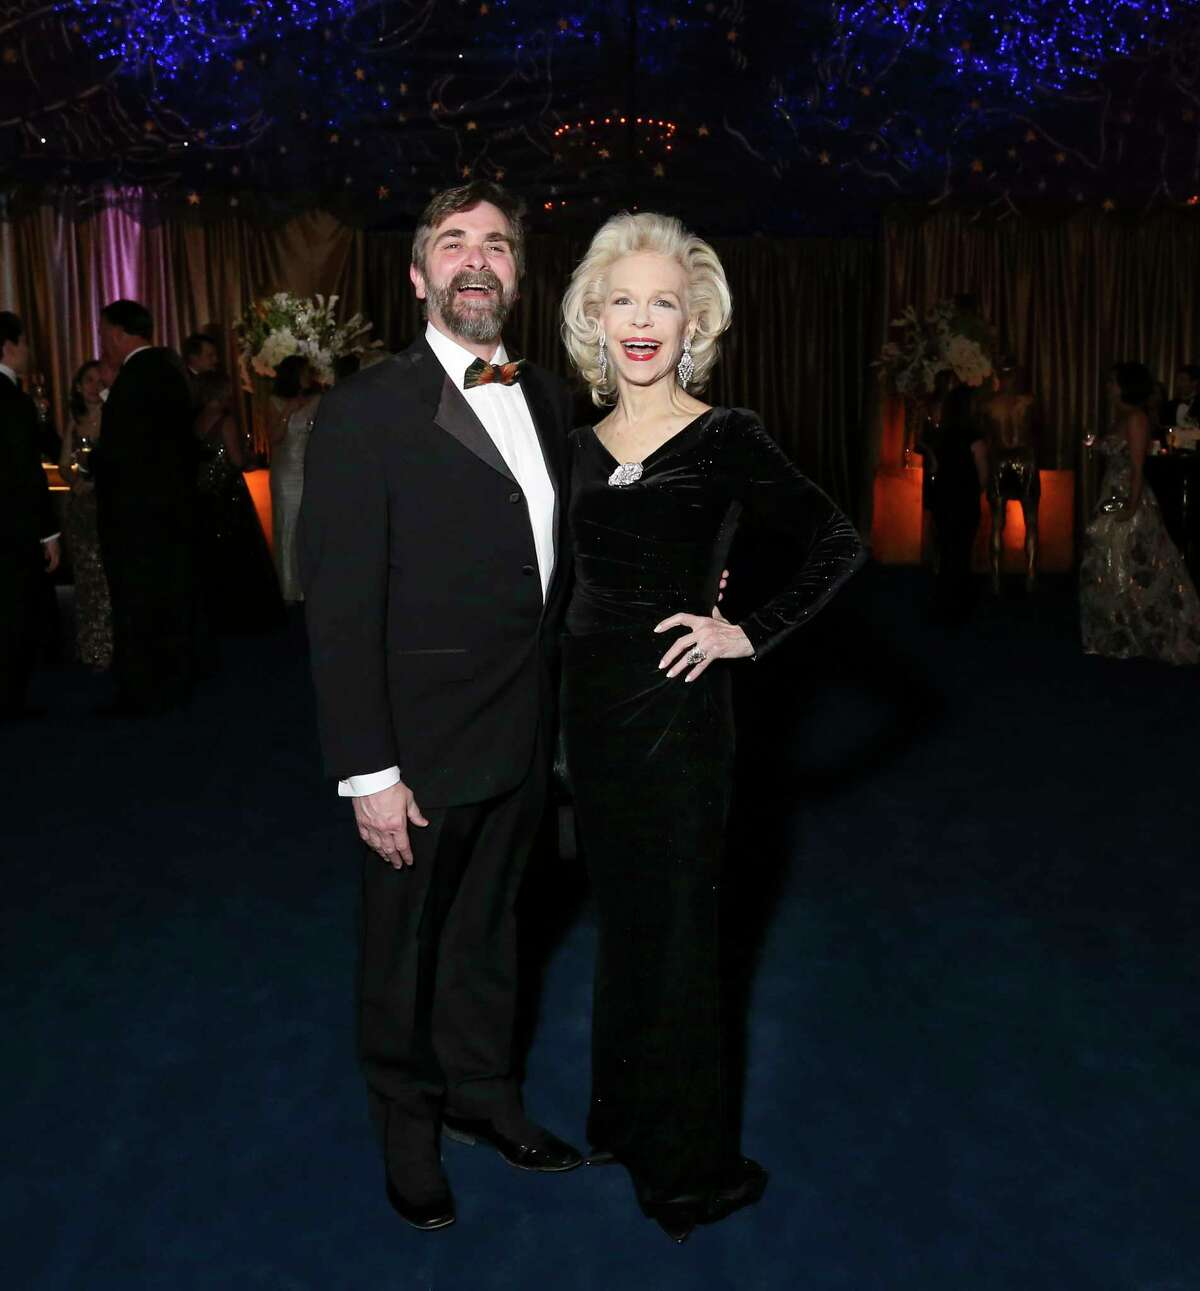 Houston Ballet Artistic Director Stanton Welch AM and Lynn Wyatt have a lighthearted moment at the 2019 Ballet Ball at the Houston Ballet Center for Dance on Saturday, Feb. 9, 2019, in Houston.